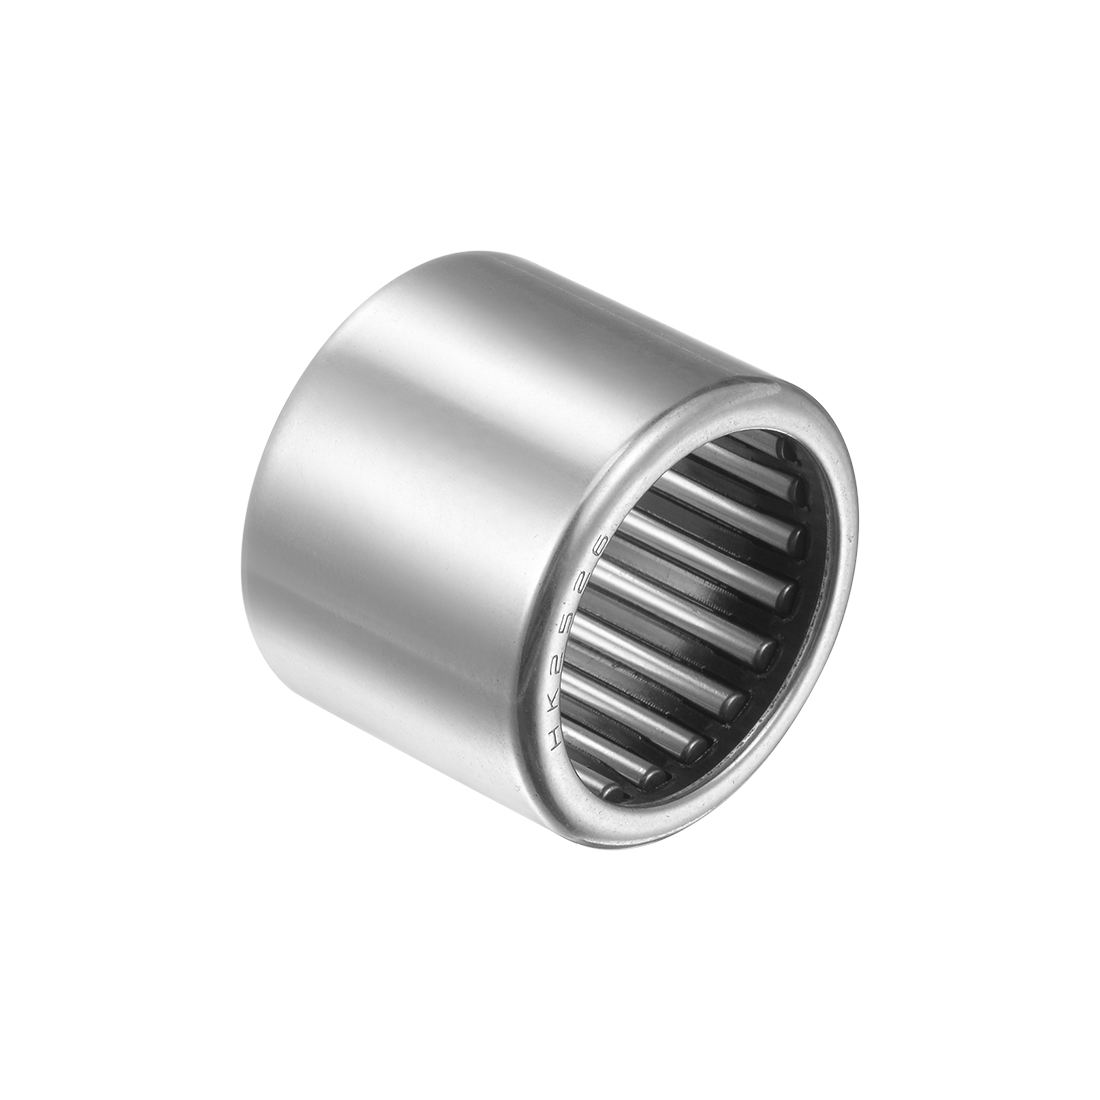 HK2526 Drawn Cup Needle Roller Bearings 25mm Bore, 32mm OD, 26mm Width